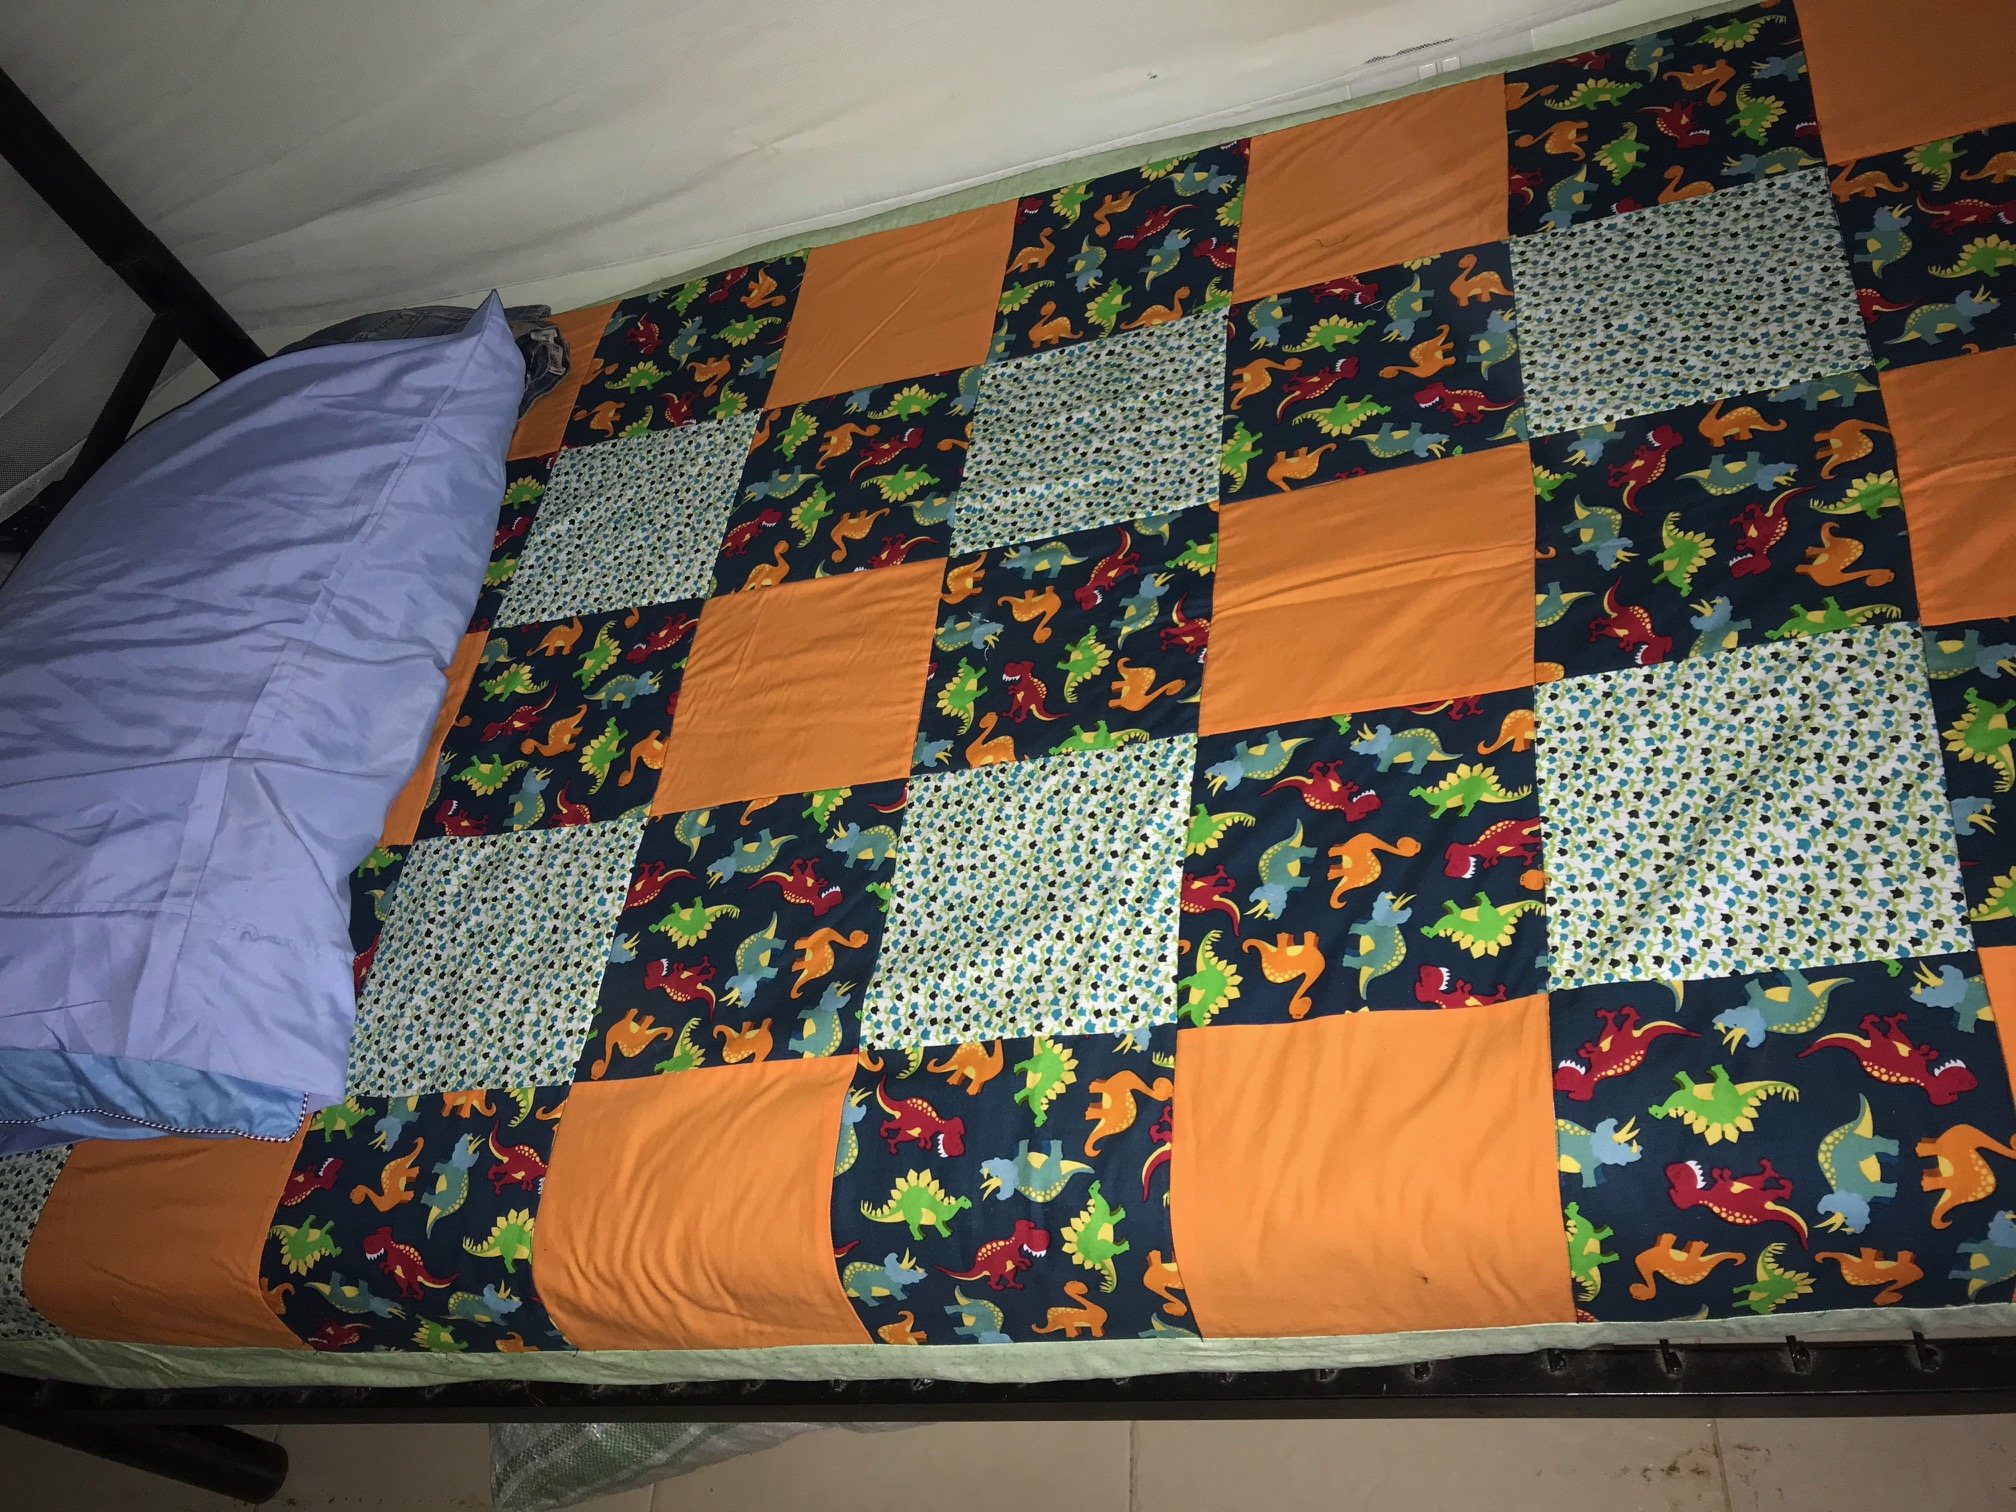 New Bed, Bedspread made by donor